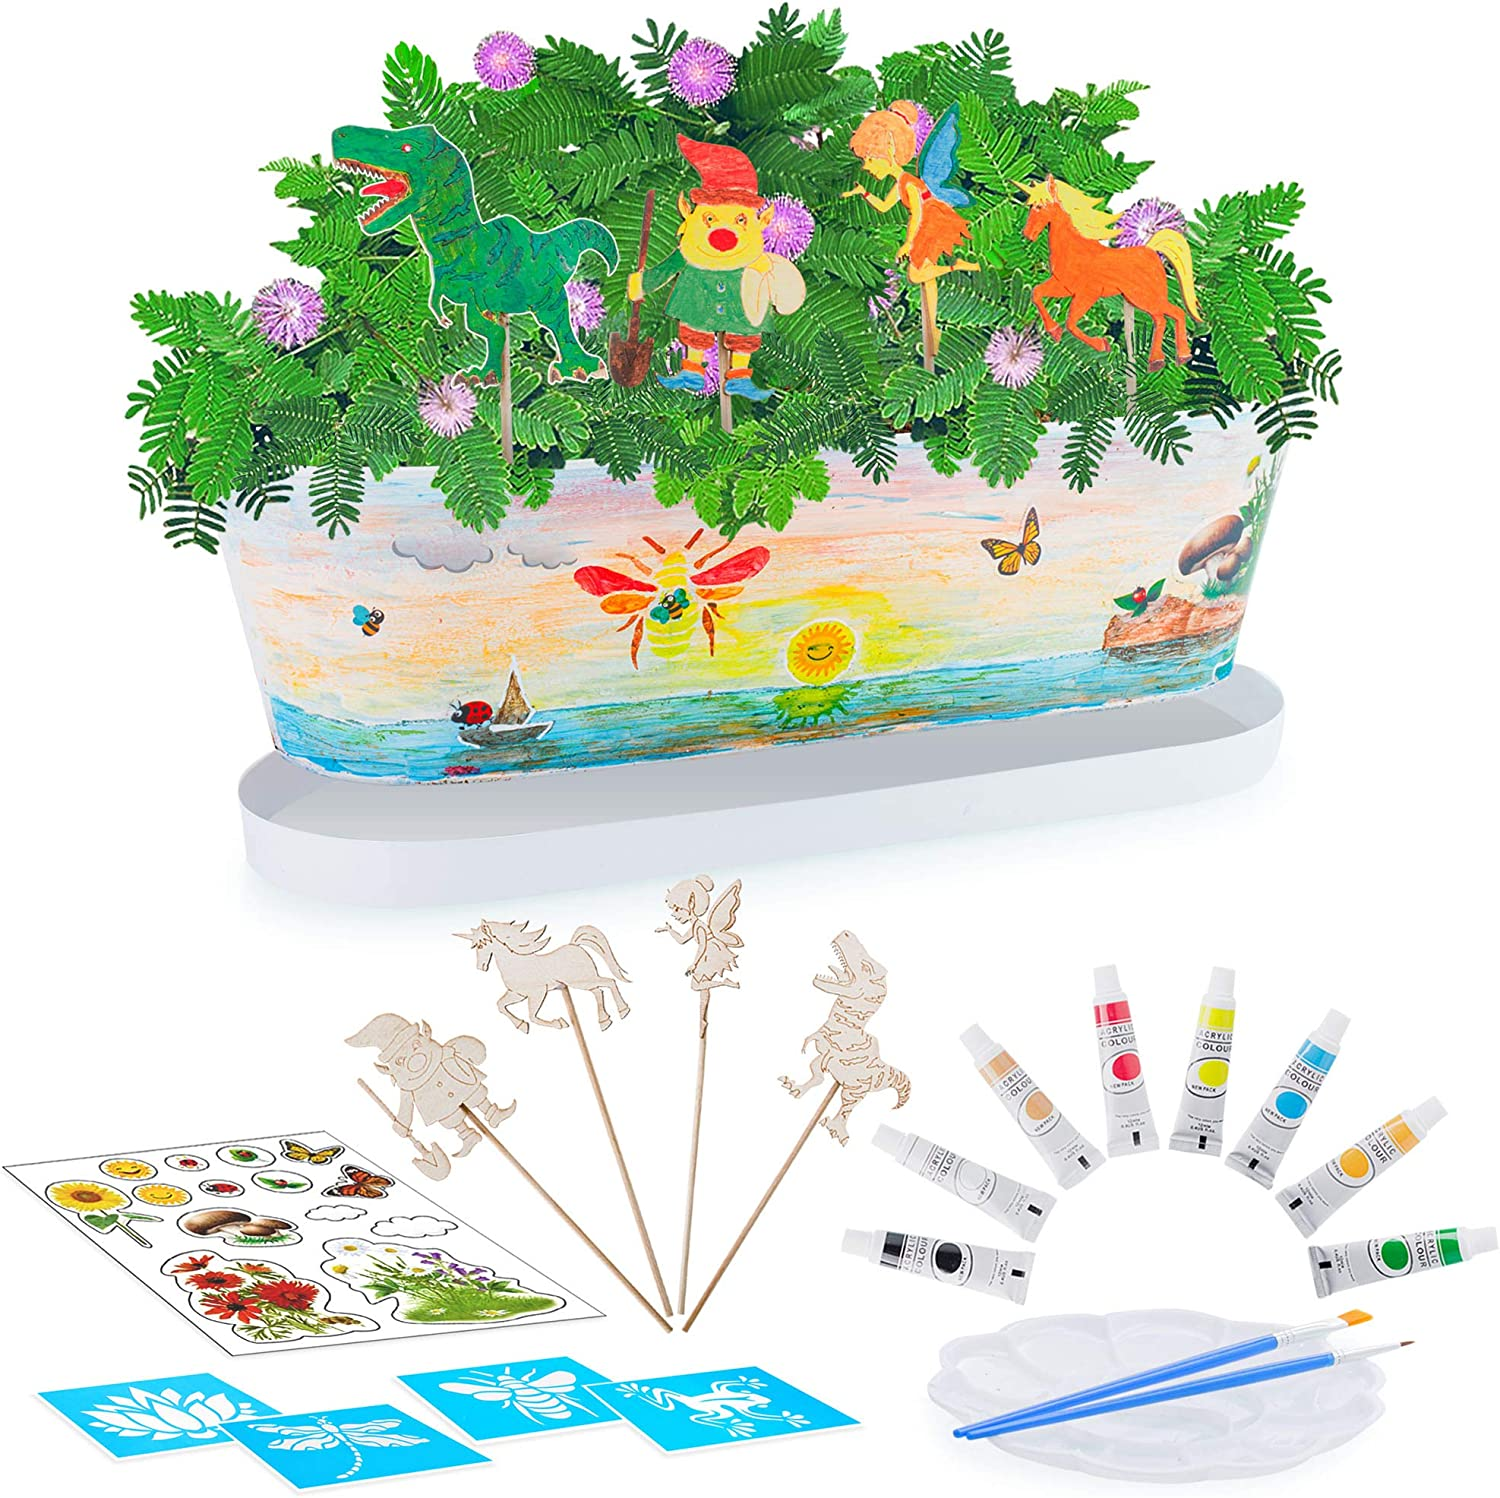 Blooming Toys Magical Moving Kids Planting Kit – All-in-One Fairy Garden Terrarium Kit with 4 Stencils, 4 Wooden Figures, 8 Acrylic Paints, 16 Stickers, 2 Seed Packs – Educational Plant STEM Toys